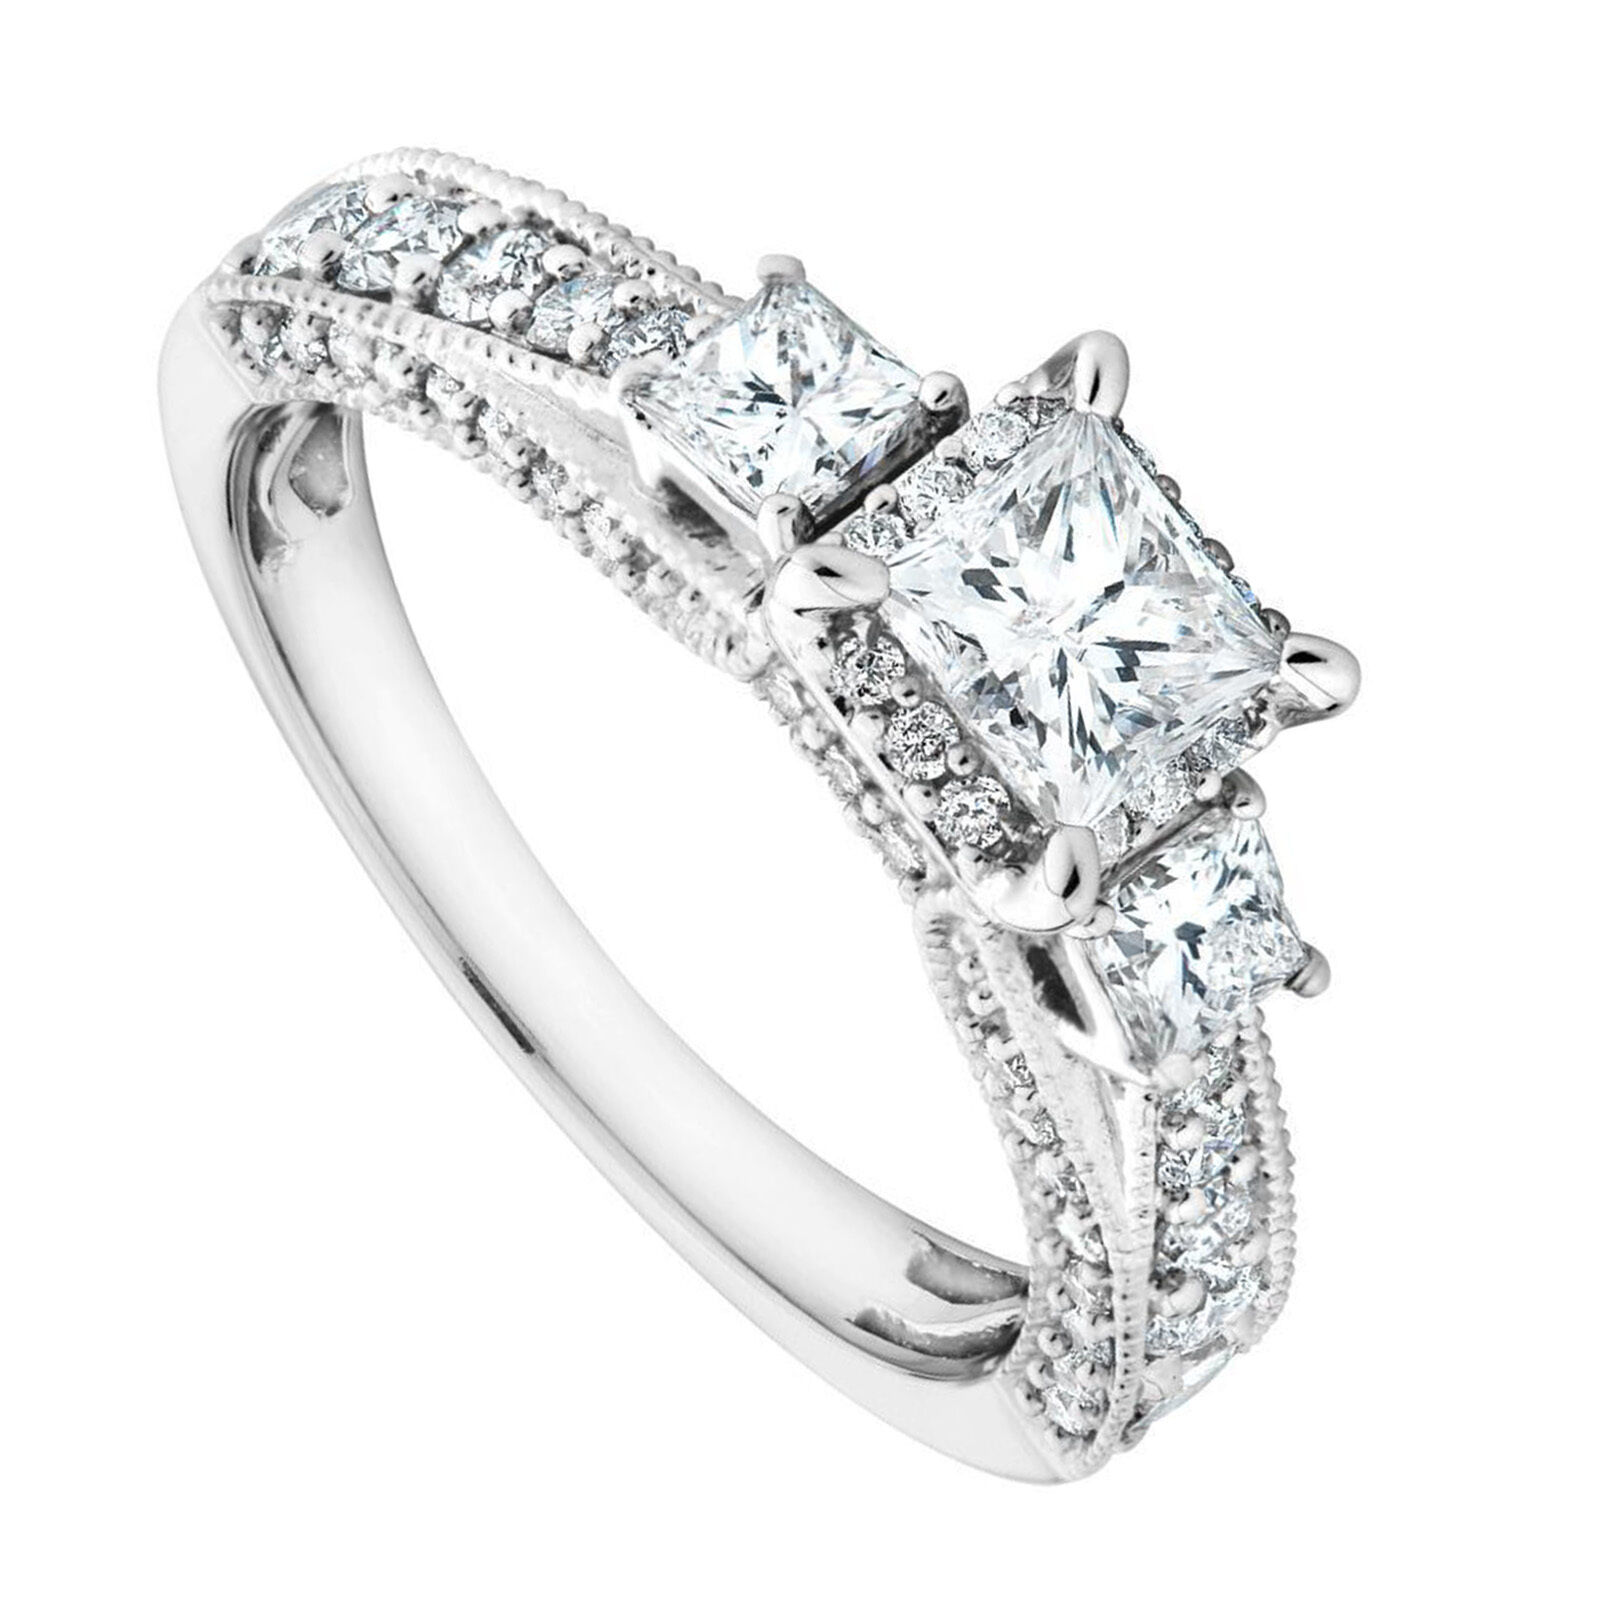 2.30 Ct Solitaire Princess Cut Diamond 14K White gold Proposal Ring Size 8